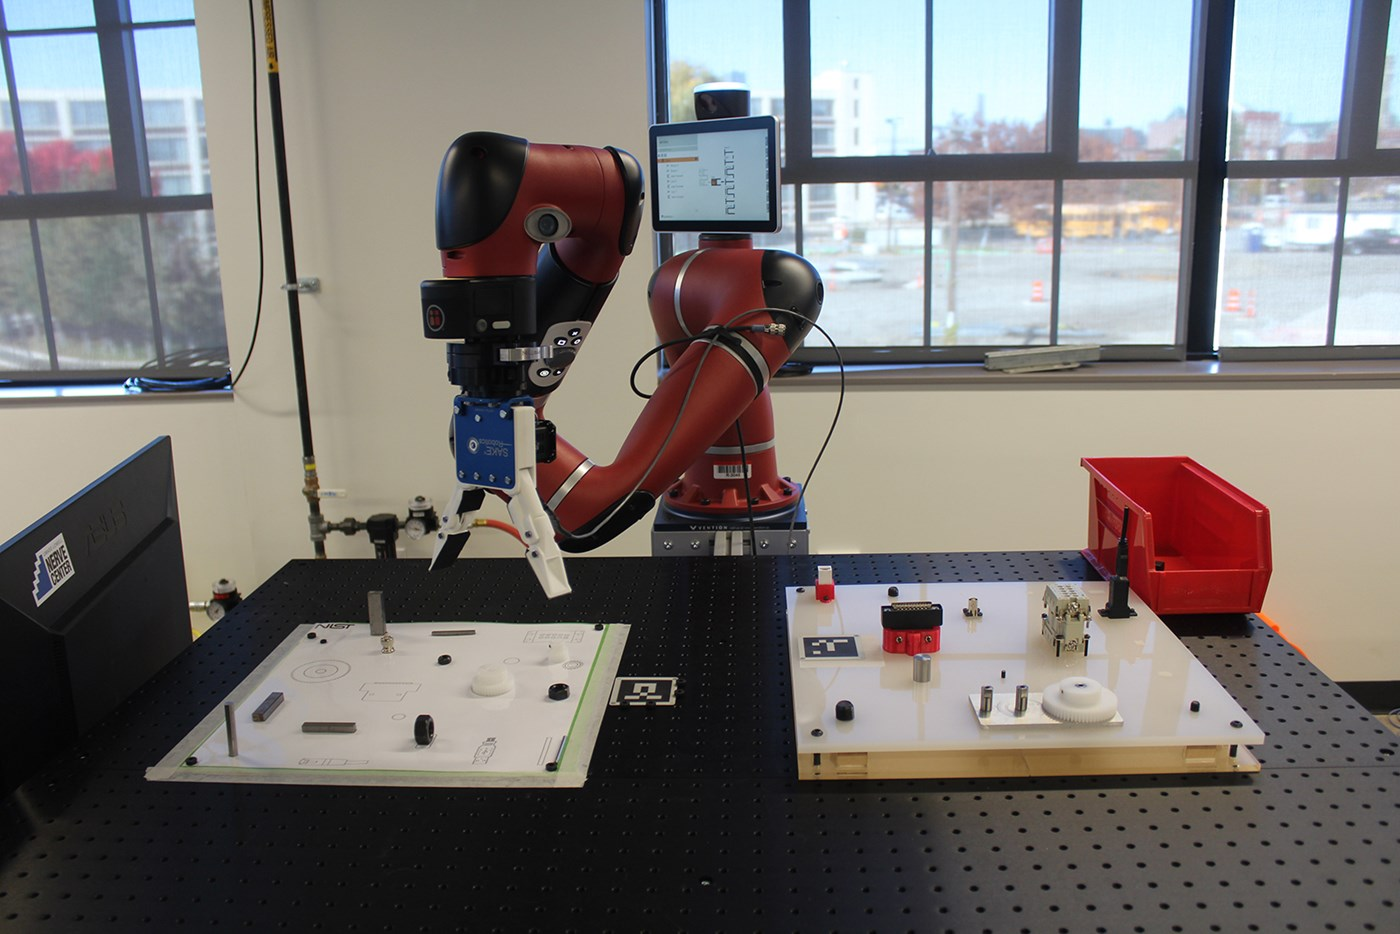 A Rethink Robotics Sawyer with SAKE Robotics EZ-Gripper